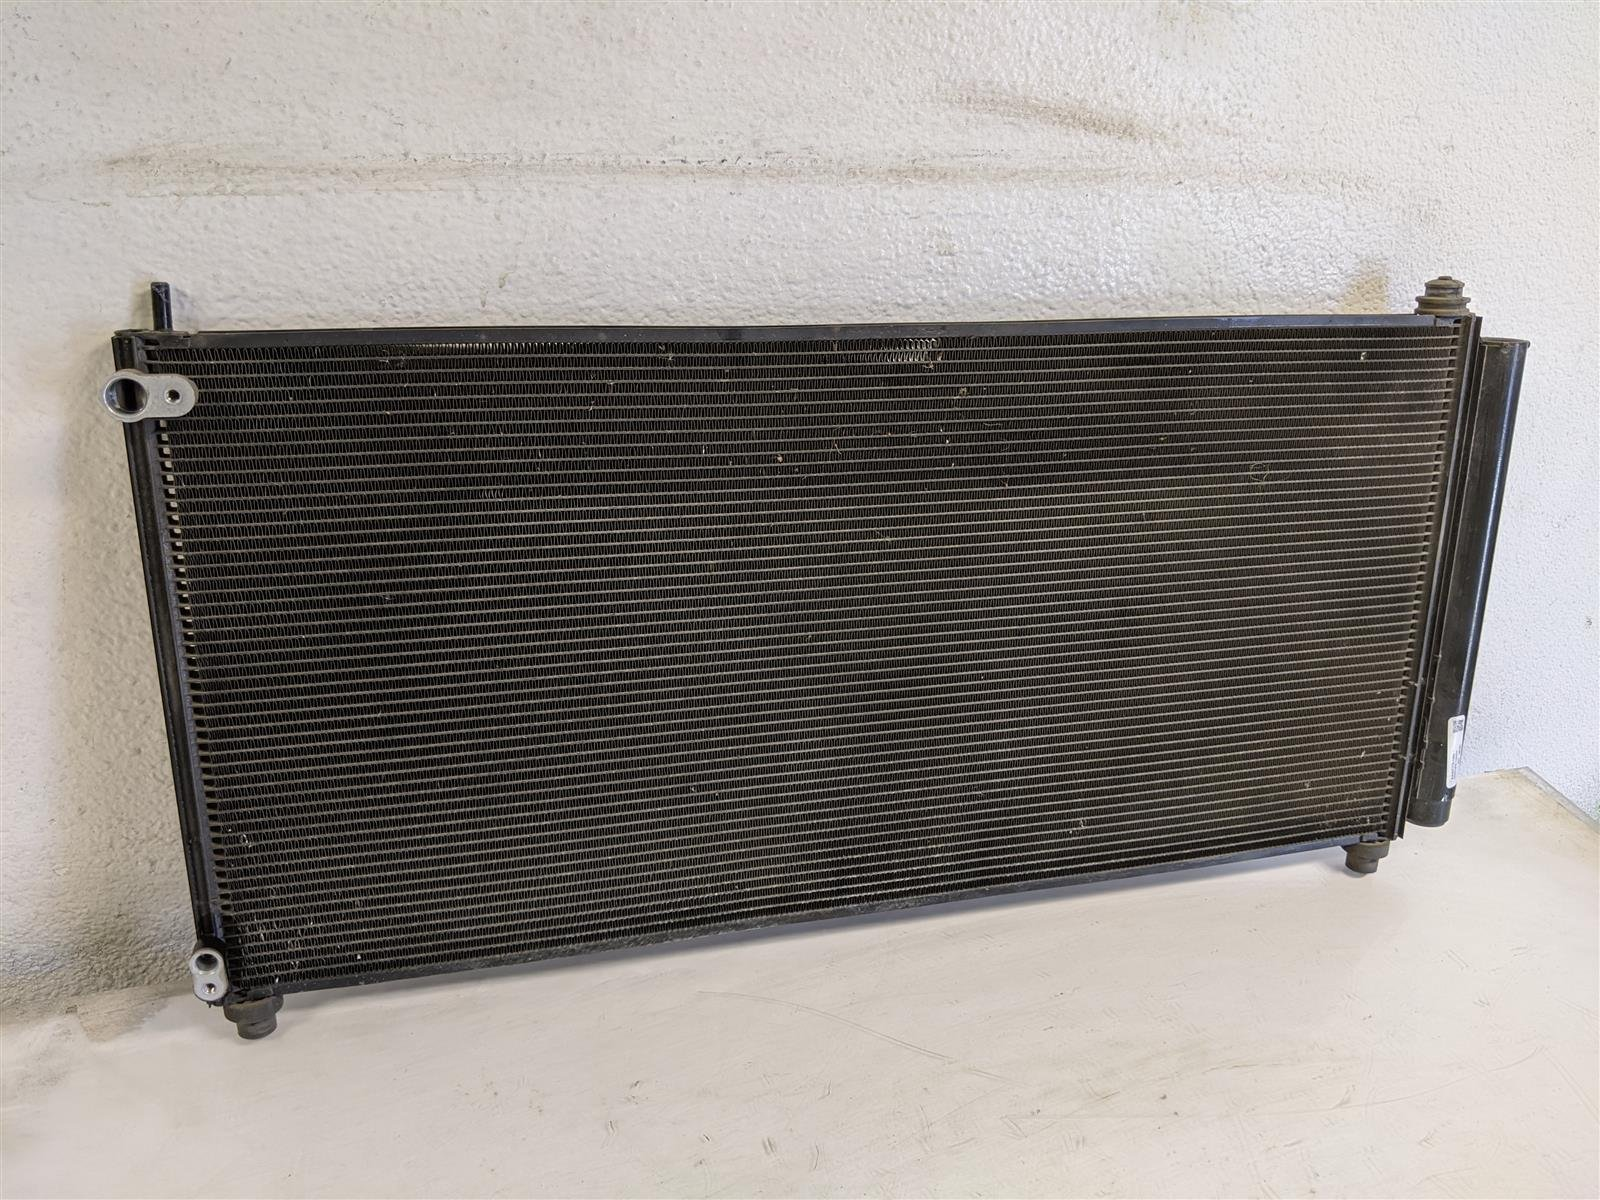 2017 Acura TLX Ac Condenser Replacement